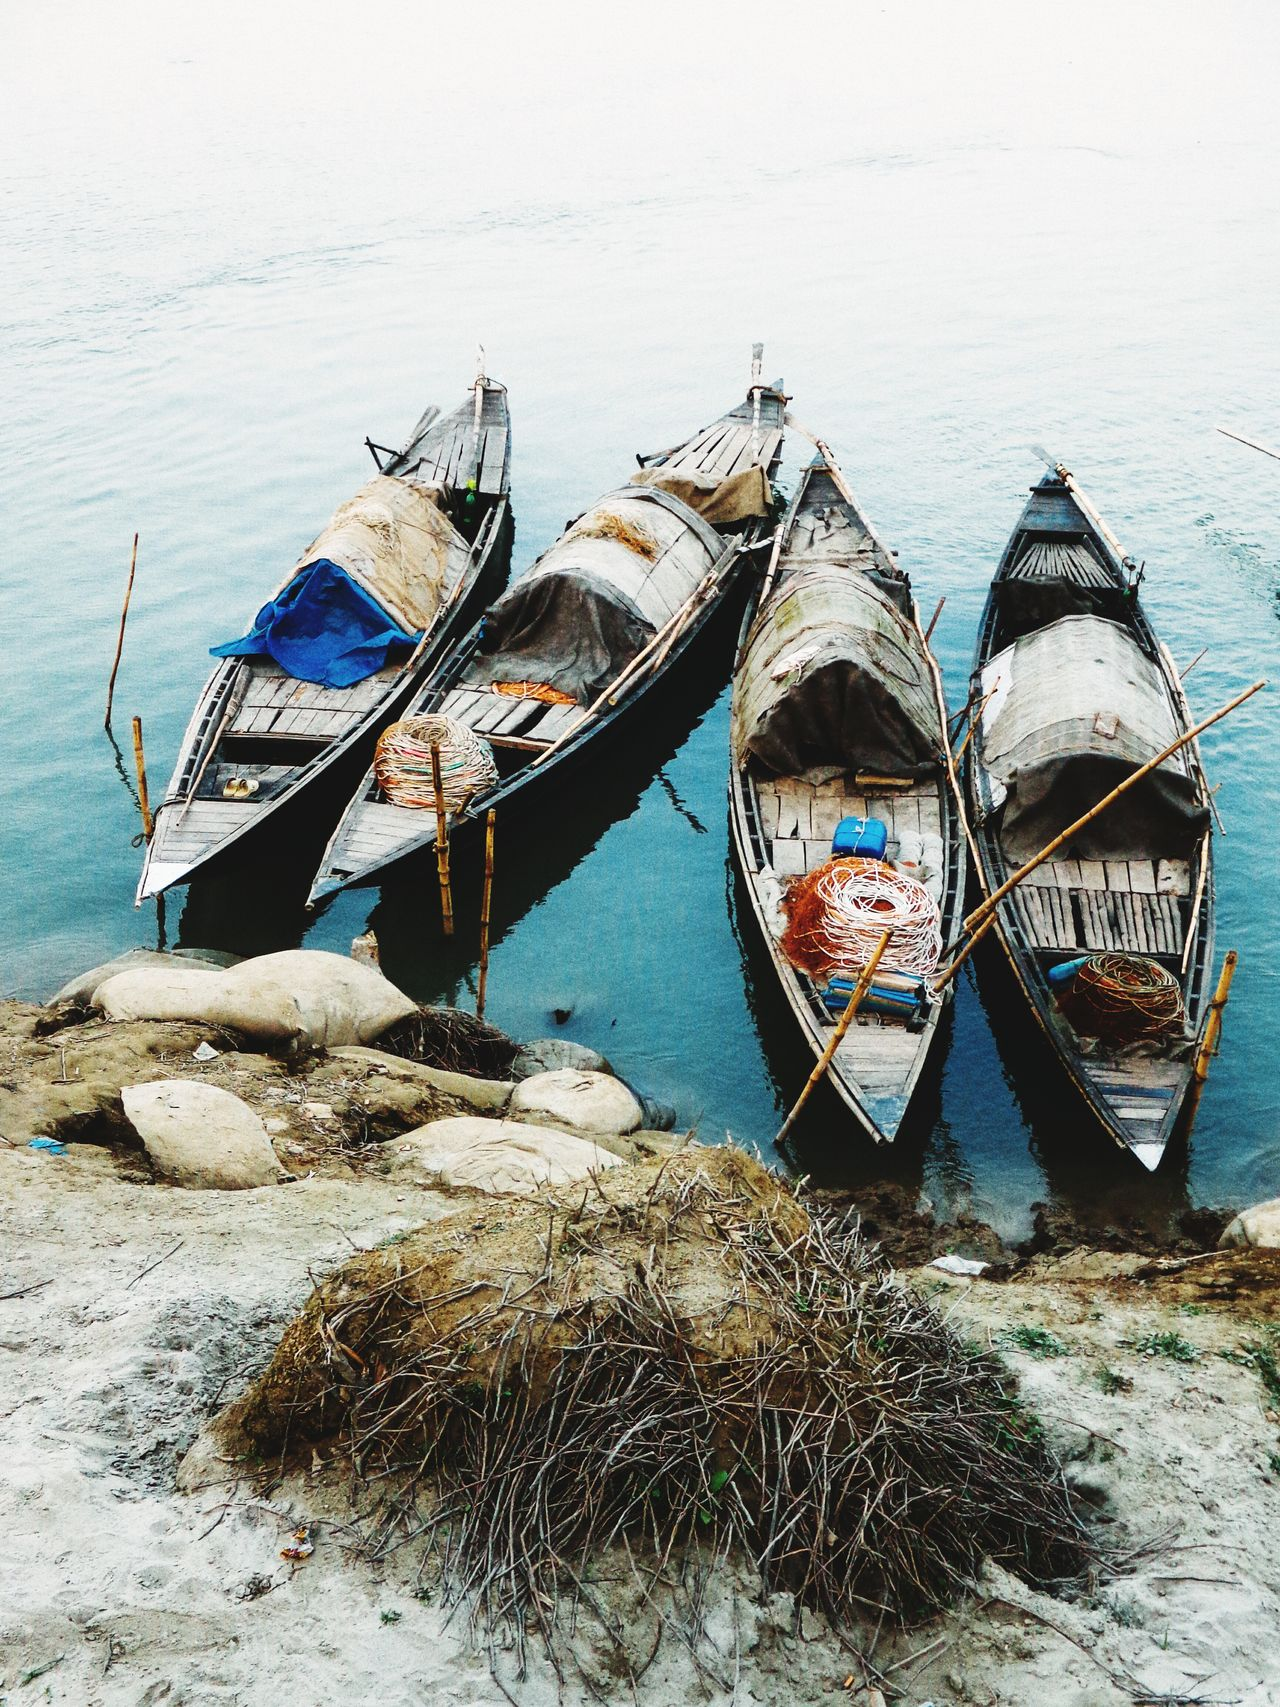 Boats Nautical Vessel Gondola - Traditional Boat Transportation Moored Travel Destinations Travel Mode Of Transport Outdoors Tourism Day Vacations Water People Gondolier Travel Photography River Collection Boats And Water River View Transportation Traveling The World Bangladesh Travel Traveling